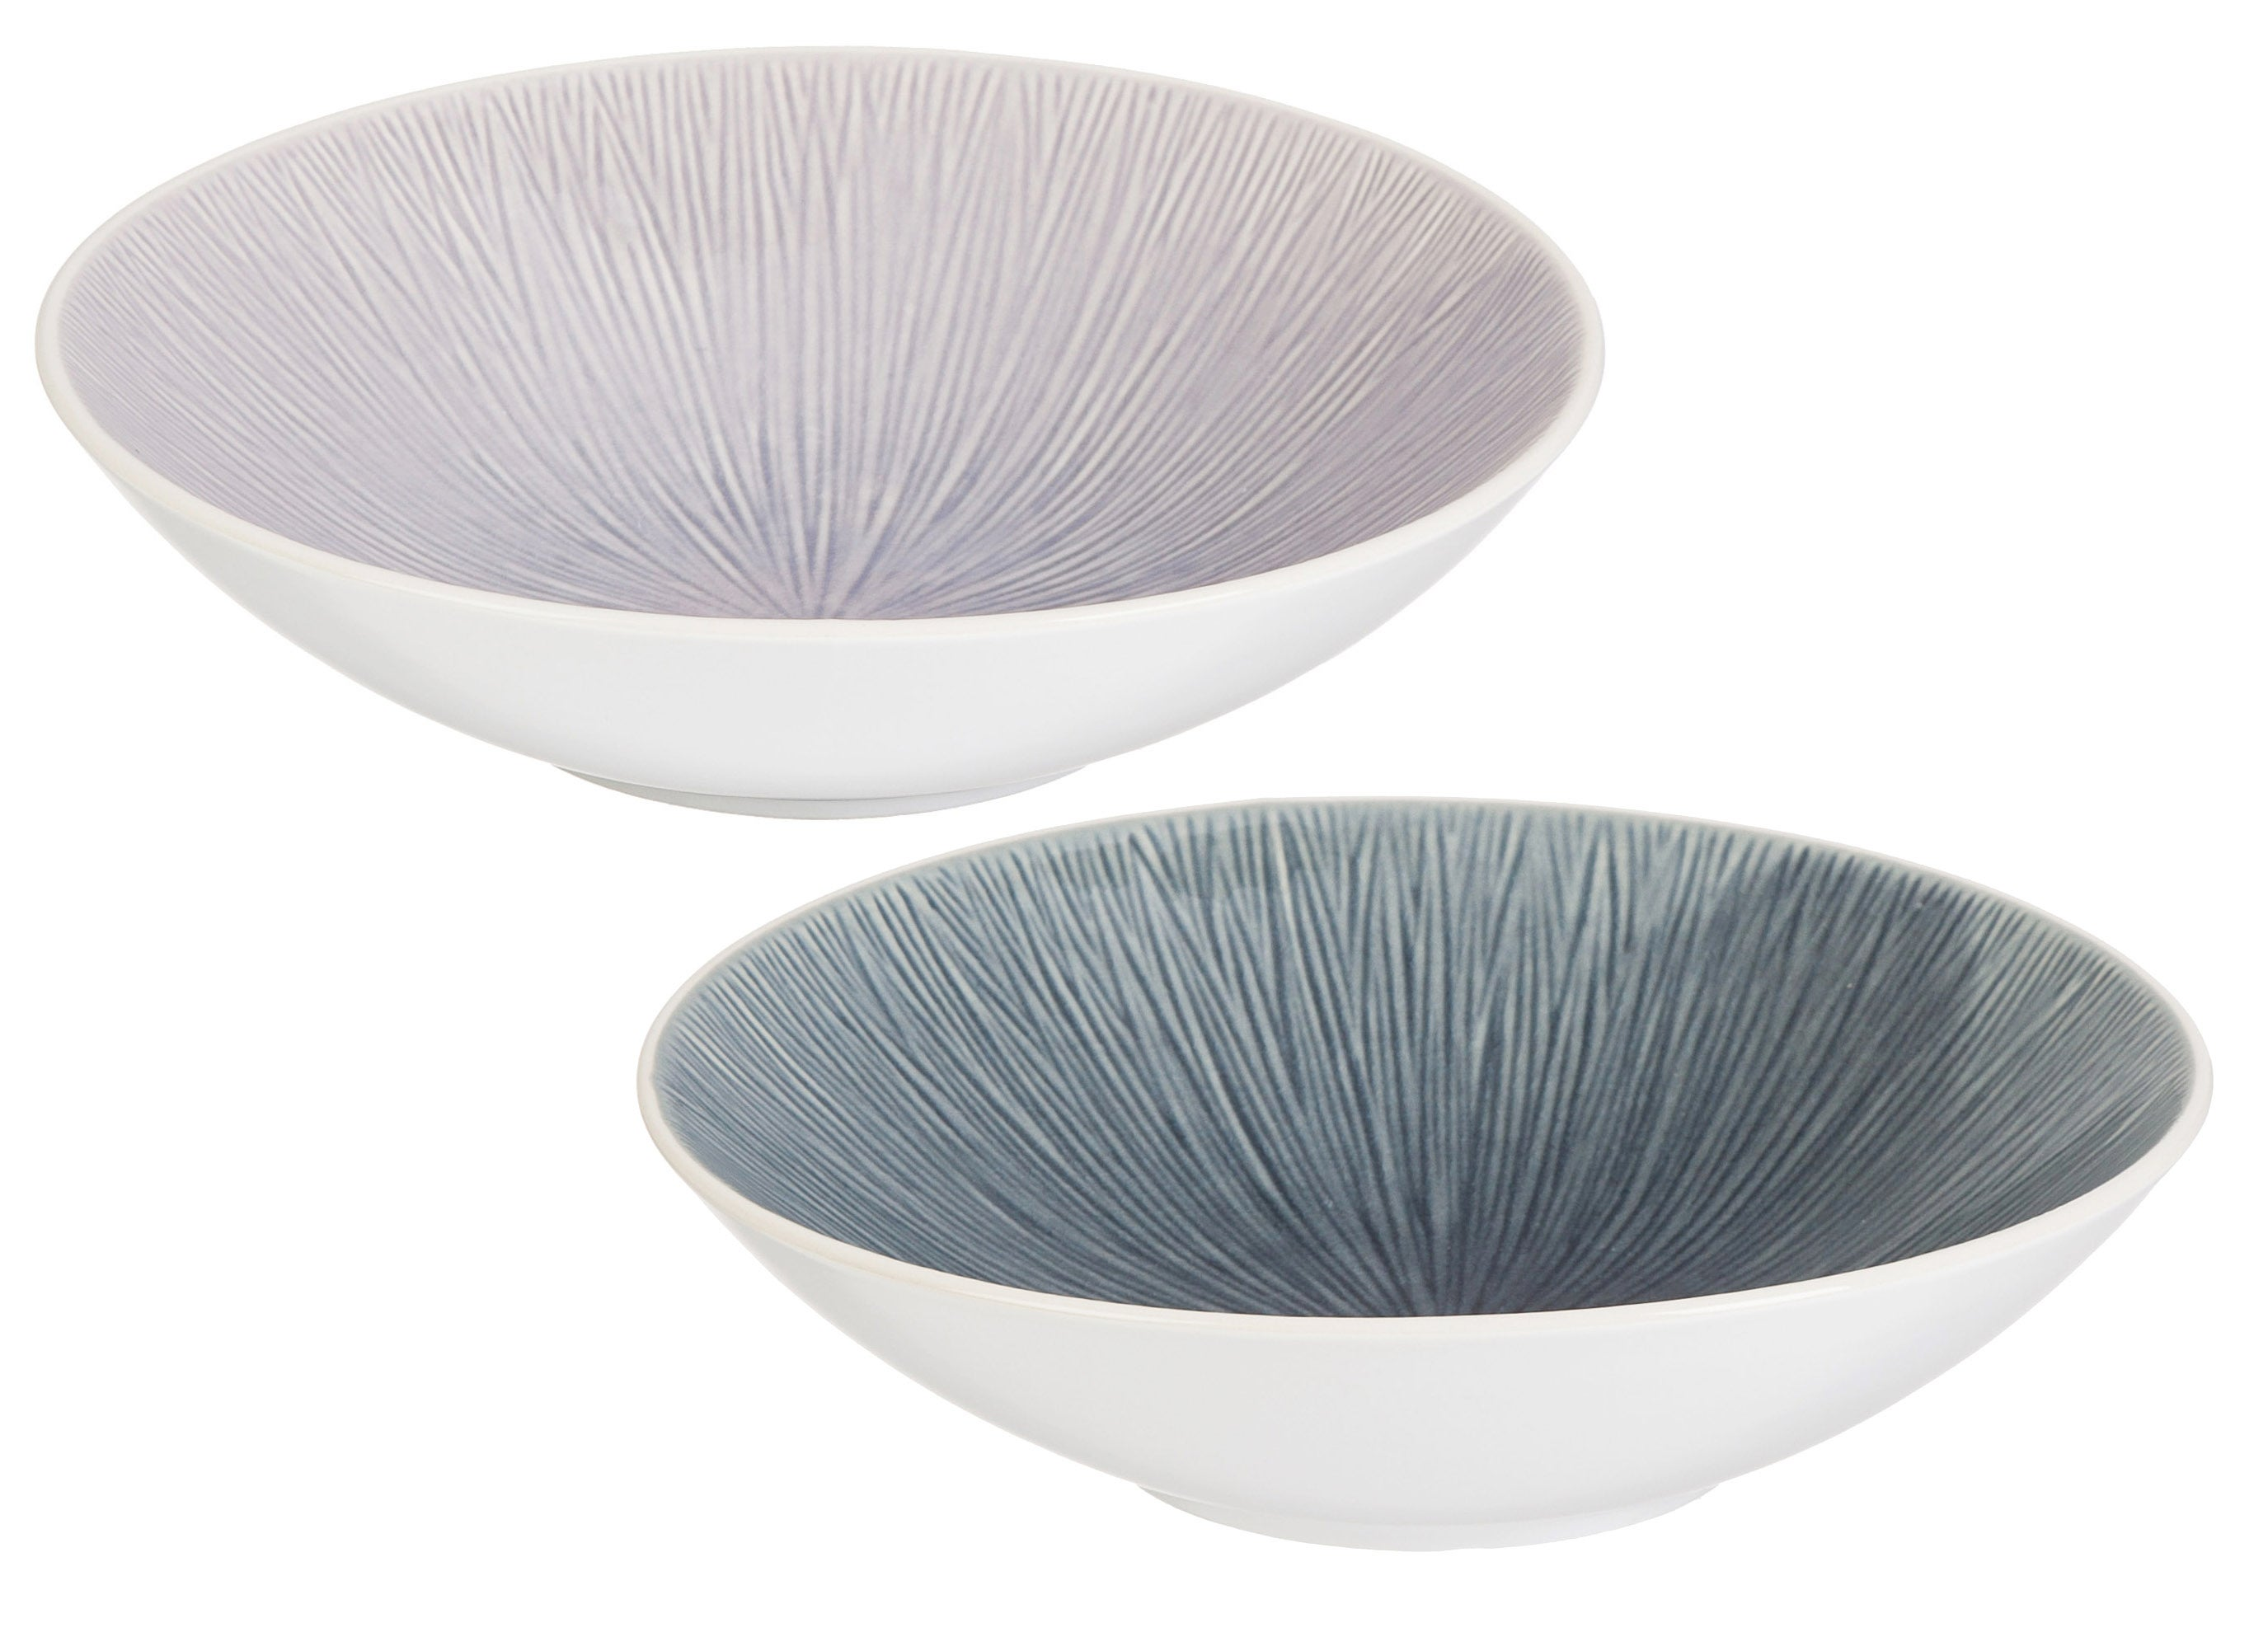 Serenity Ceramic Debossed Bowls, Set of 2